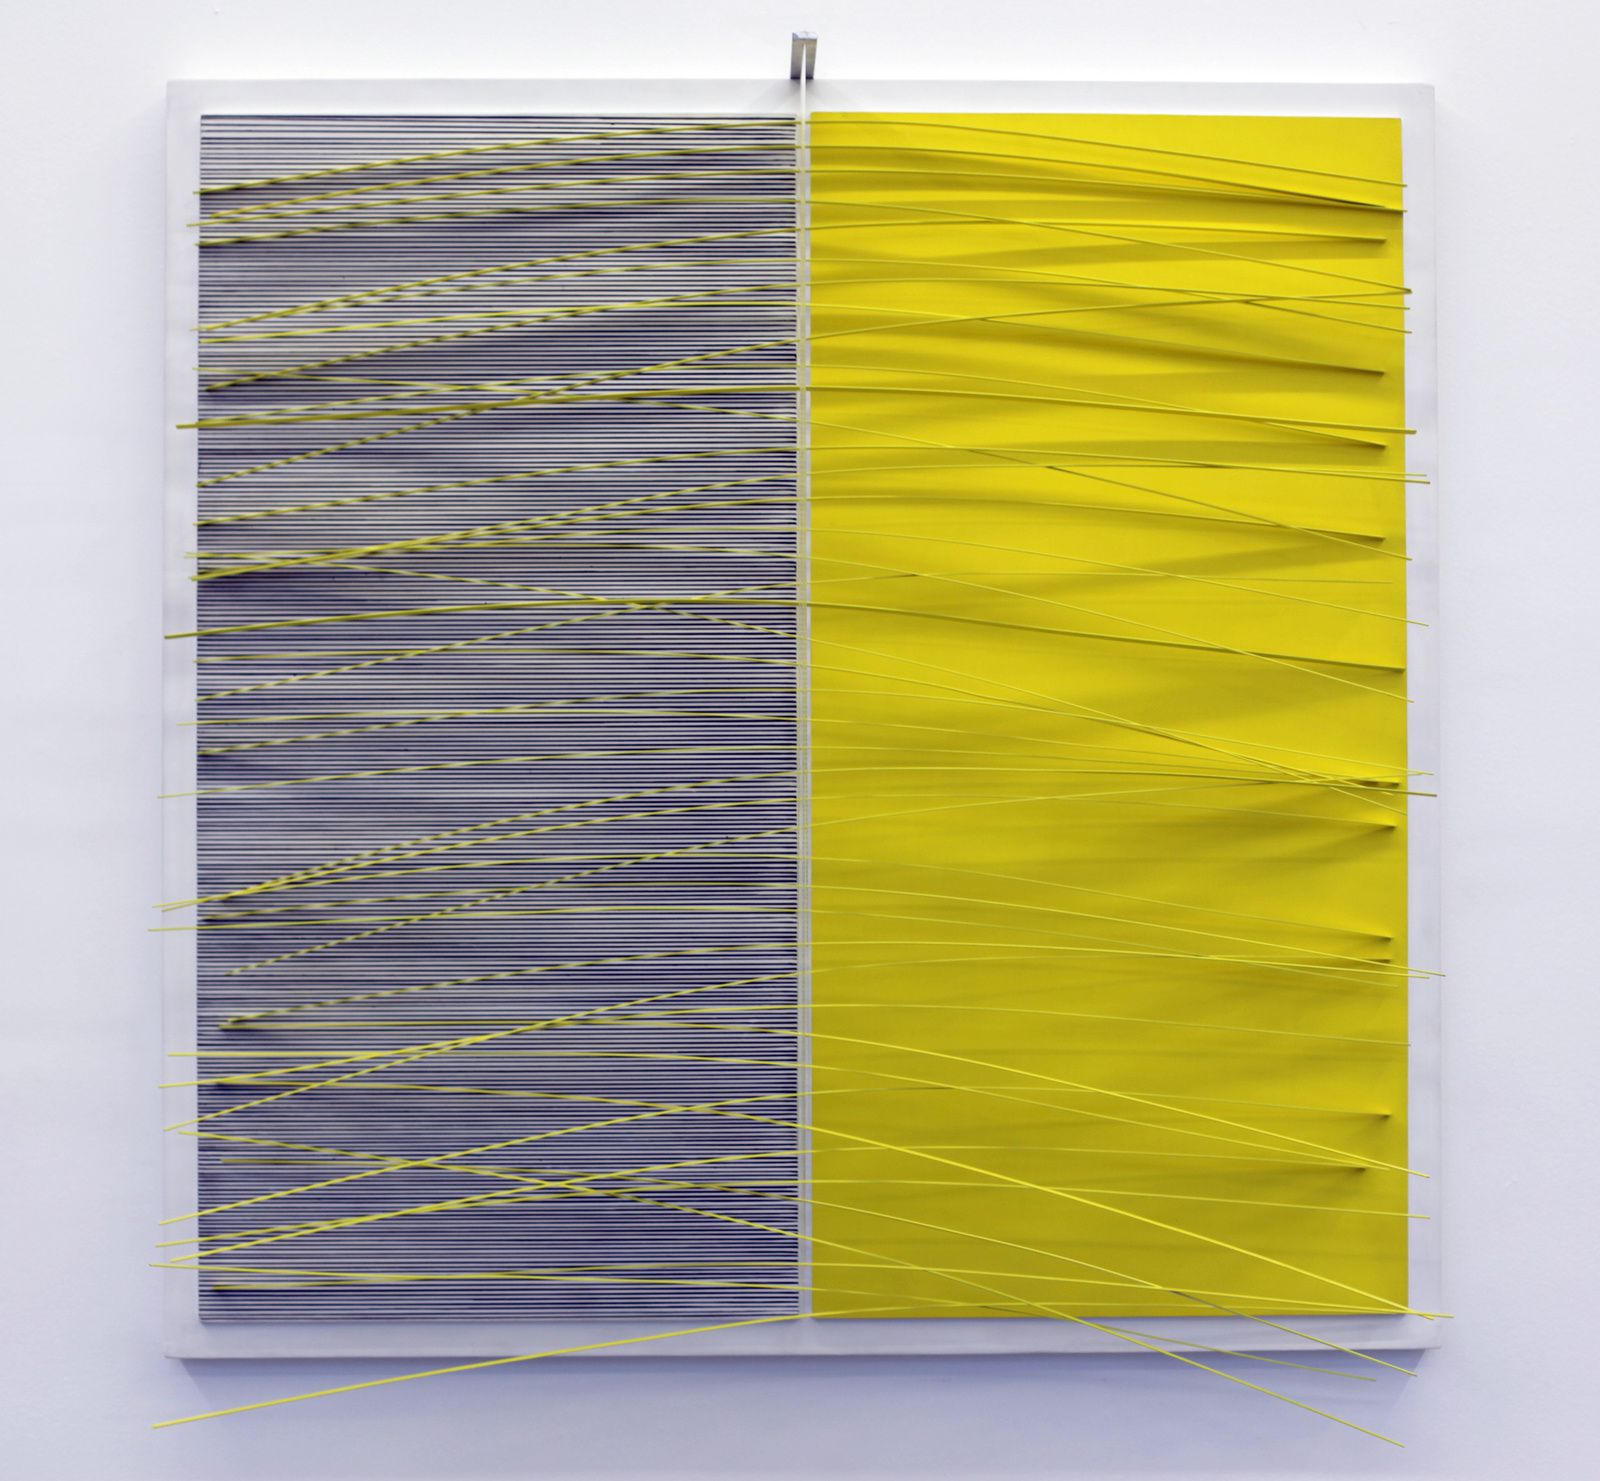 """Modulation du jaune"", 1966 de J.R Soto Courtesy Galerie Perrotin © Photo Éric Simon"